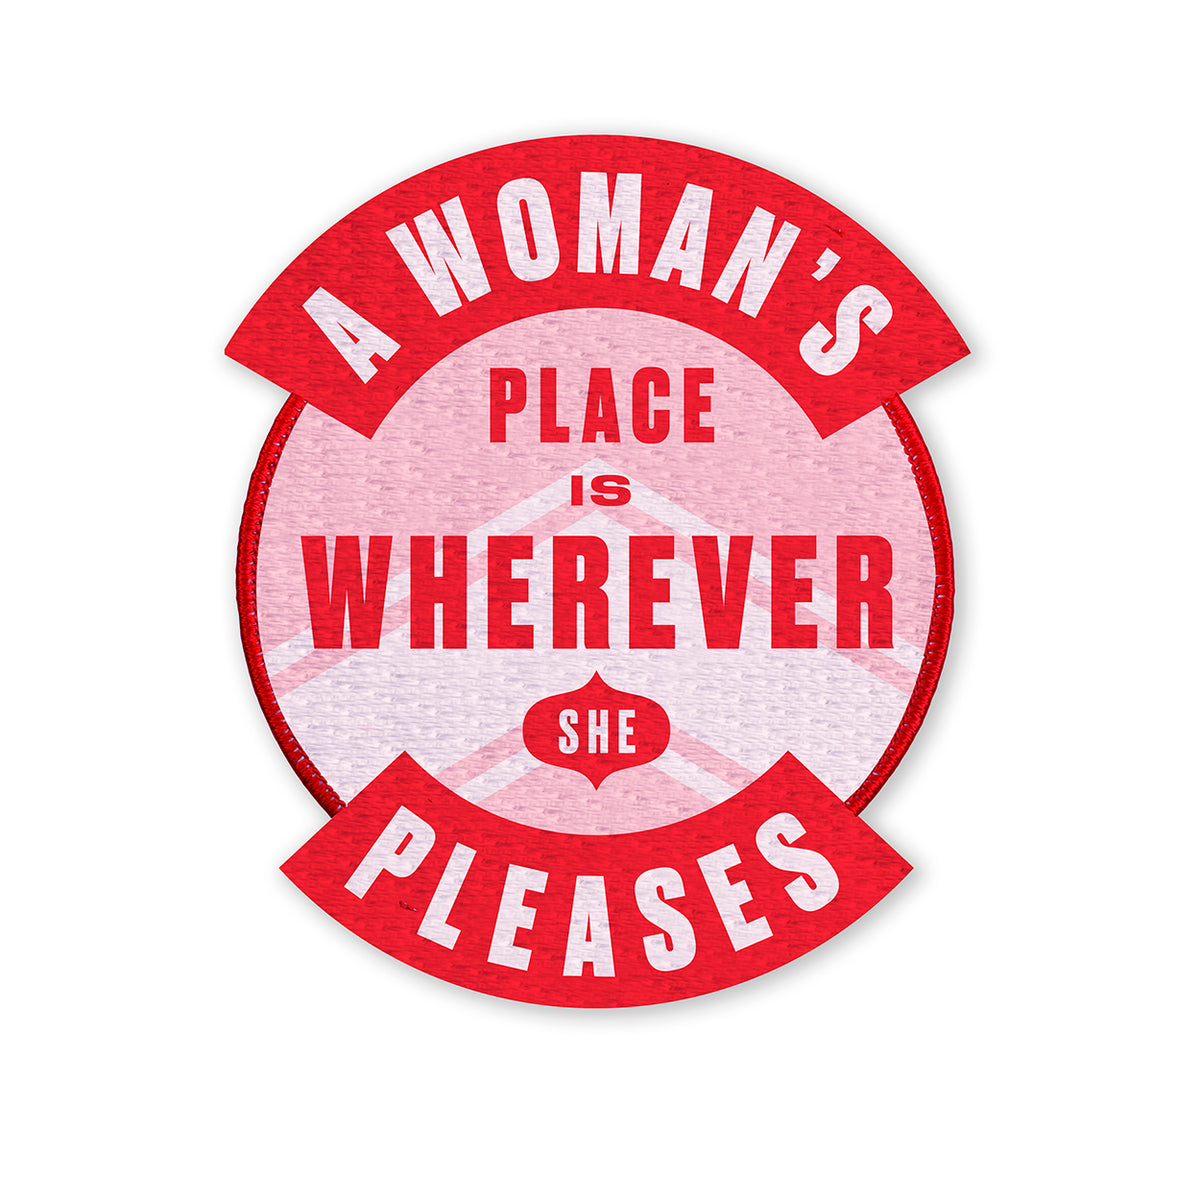 image of a woman's place embroidered patch